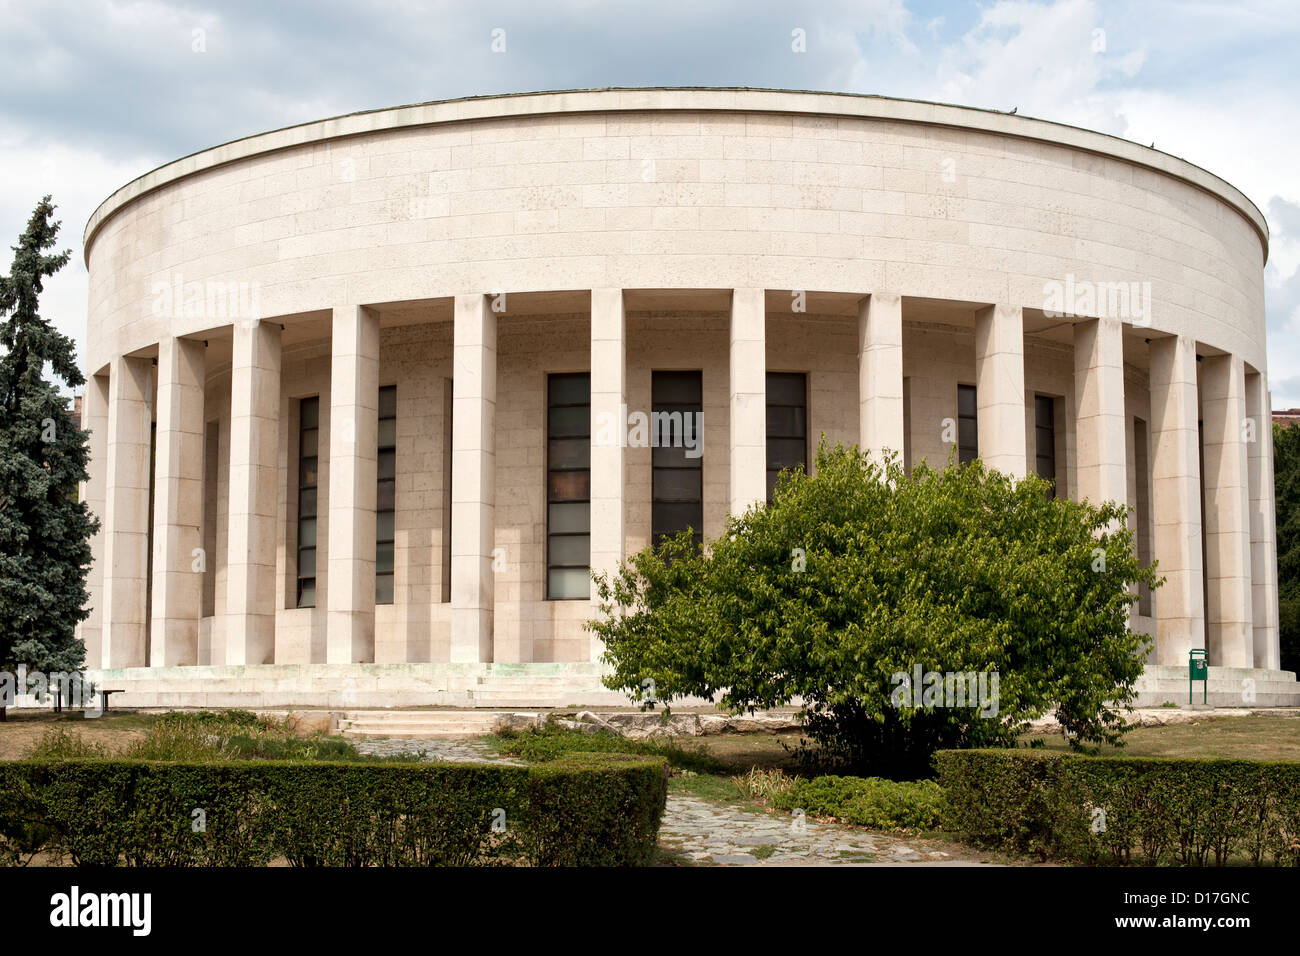 The Mestrovic Art Pavillion (home to the Croatian Society of Visual Arts) in Zagreb, the capital of Croatia. - Stock Image